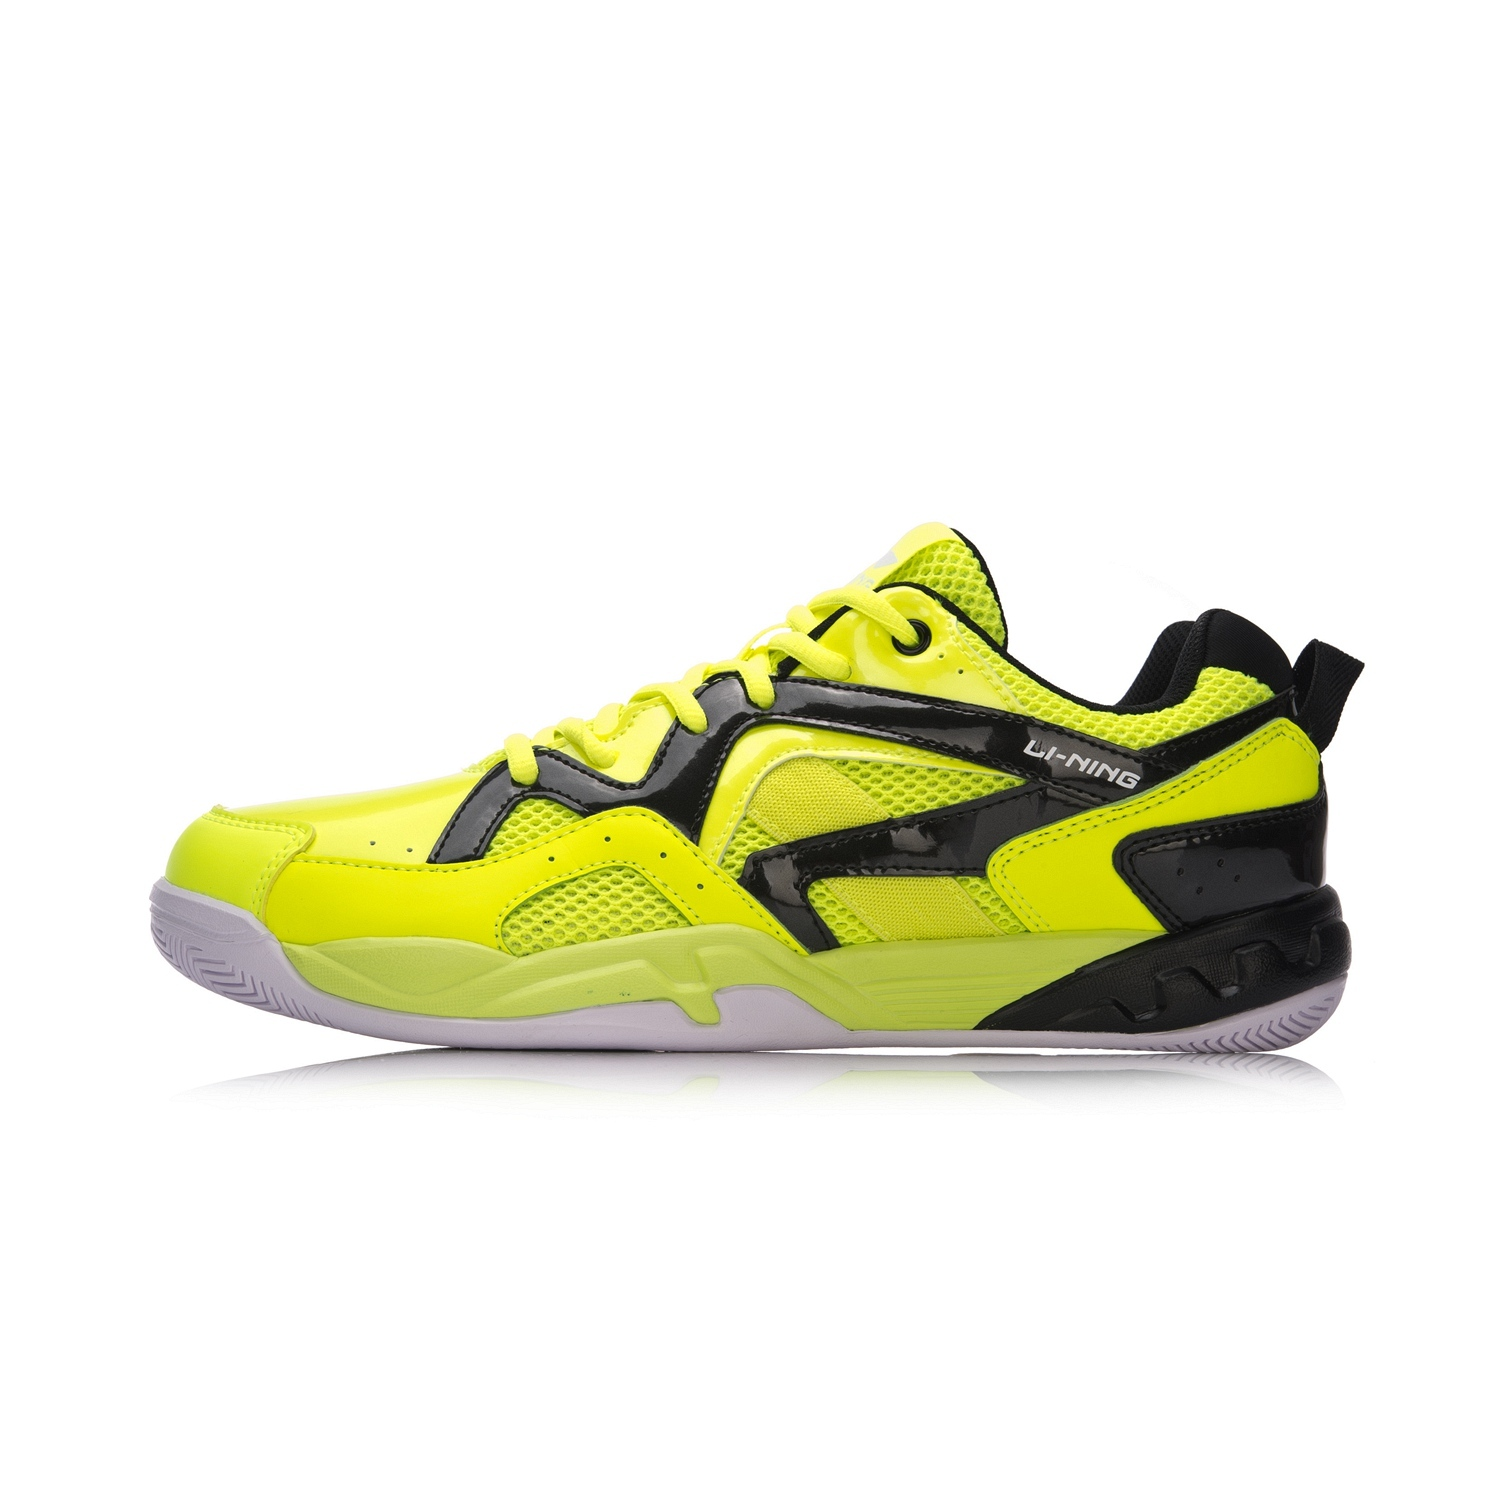 Li Ning Aytn 003 New Style Wear Non Slip Men S Low Top Sports Shoes Badminton